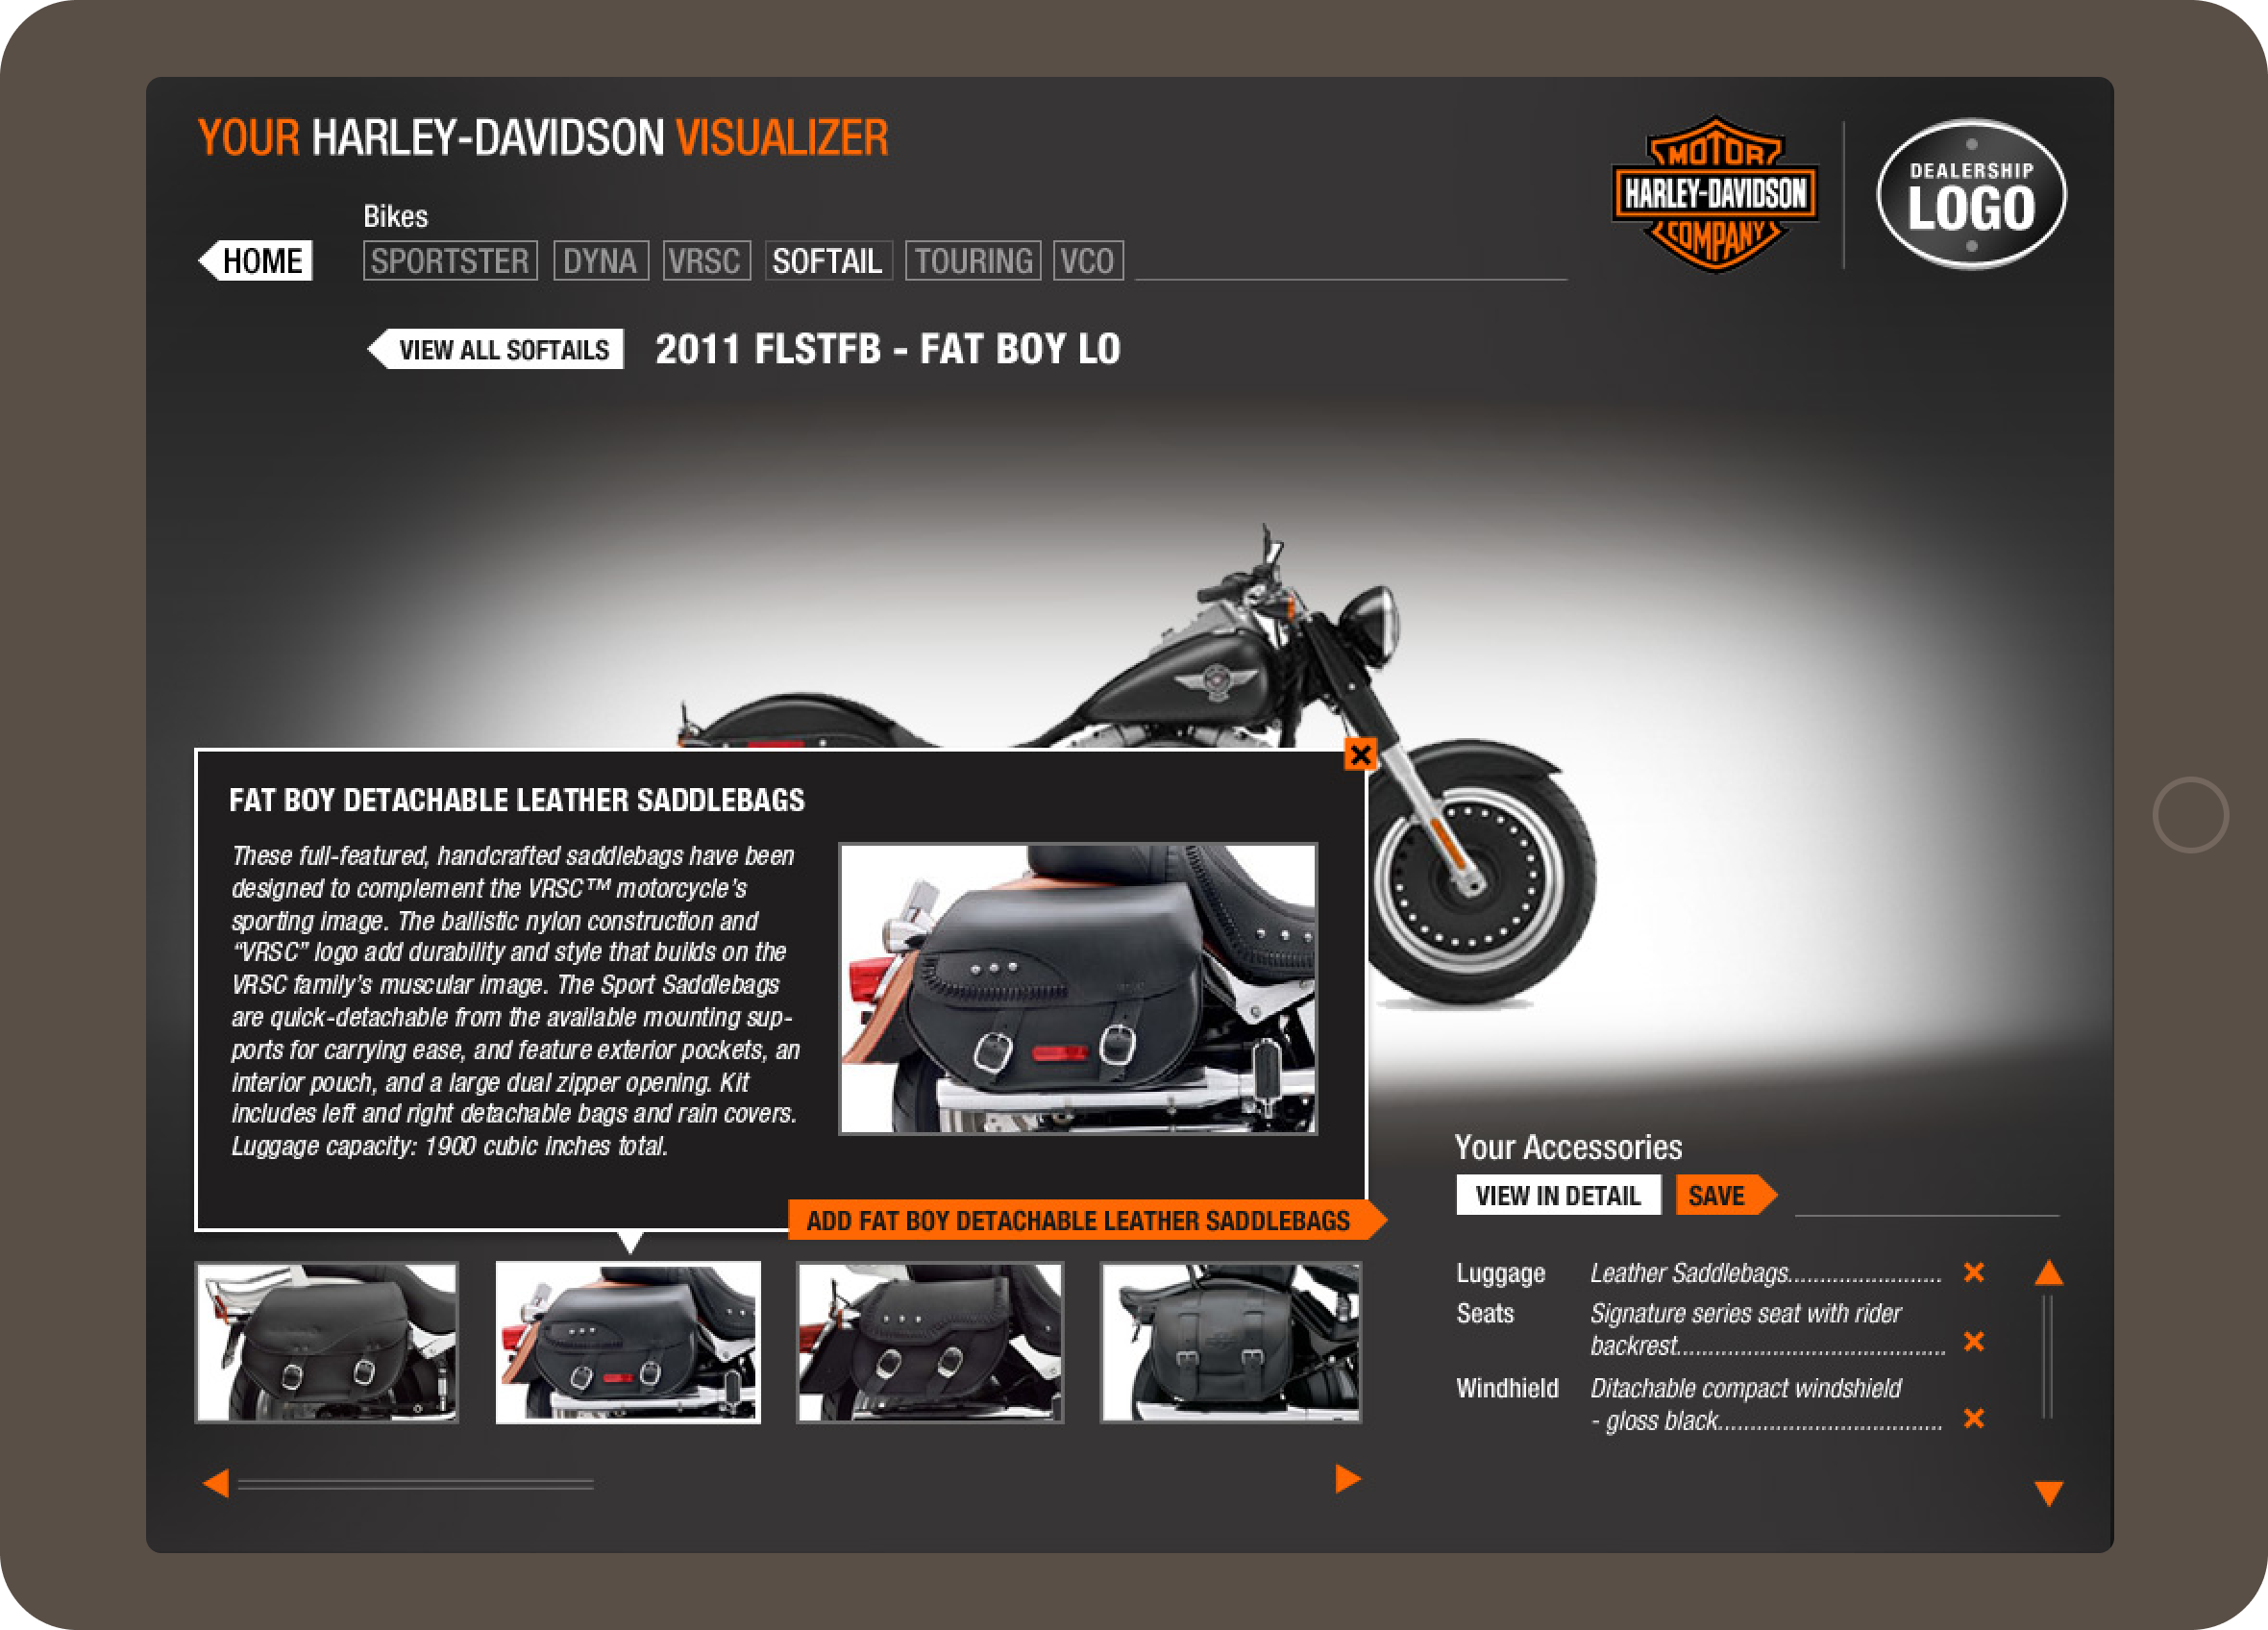 harley-davidson-visualizer-accessories